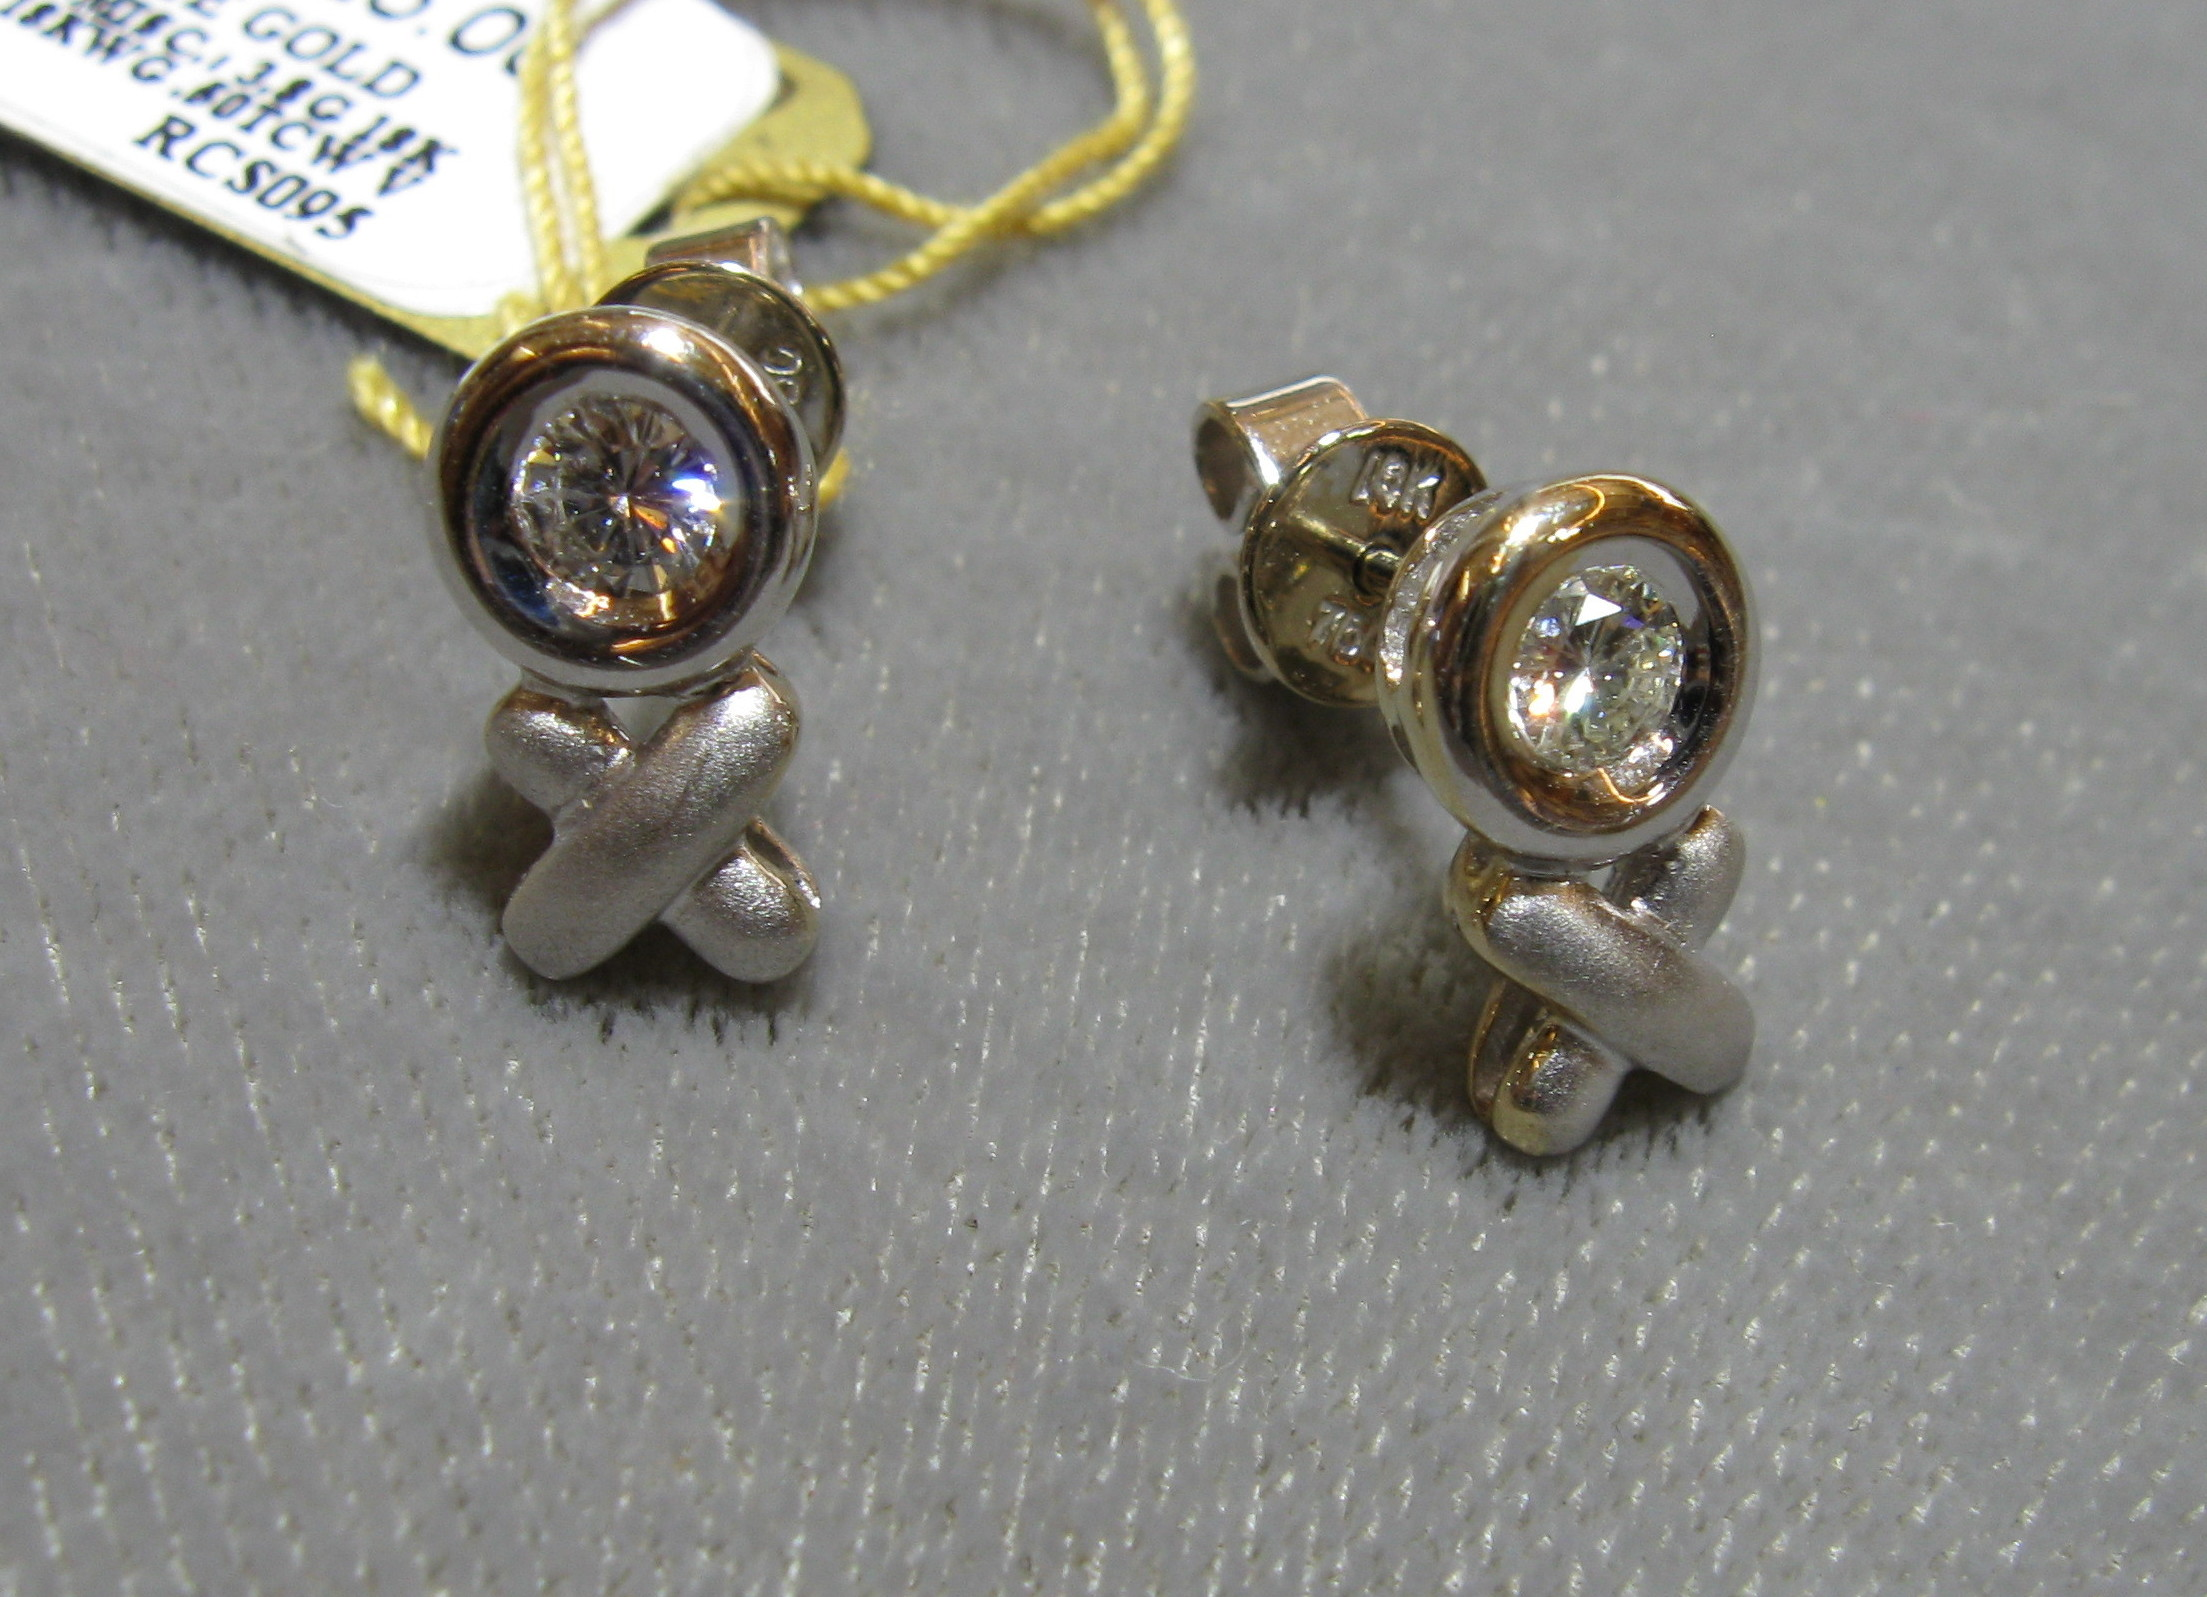 XO 18kt White Gold Earrings with 0.50 CTW VS Round Brilliant Cut Diamonds Set in the